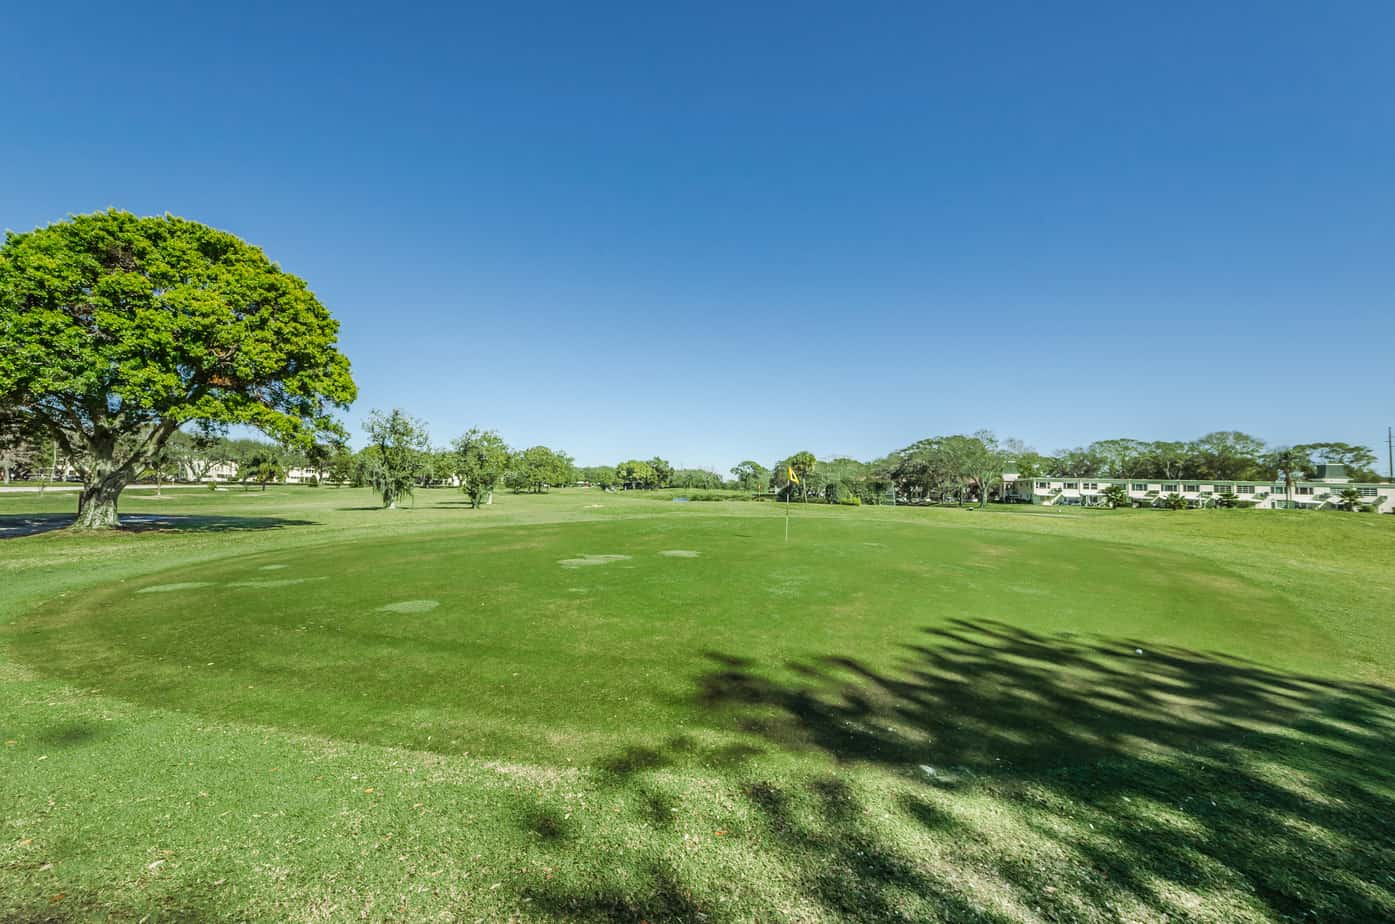 37-2285-Israeli-Dr-#17-Clearwater-Fl-33763-Golf Course3